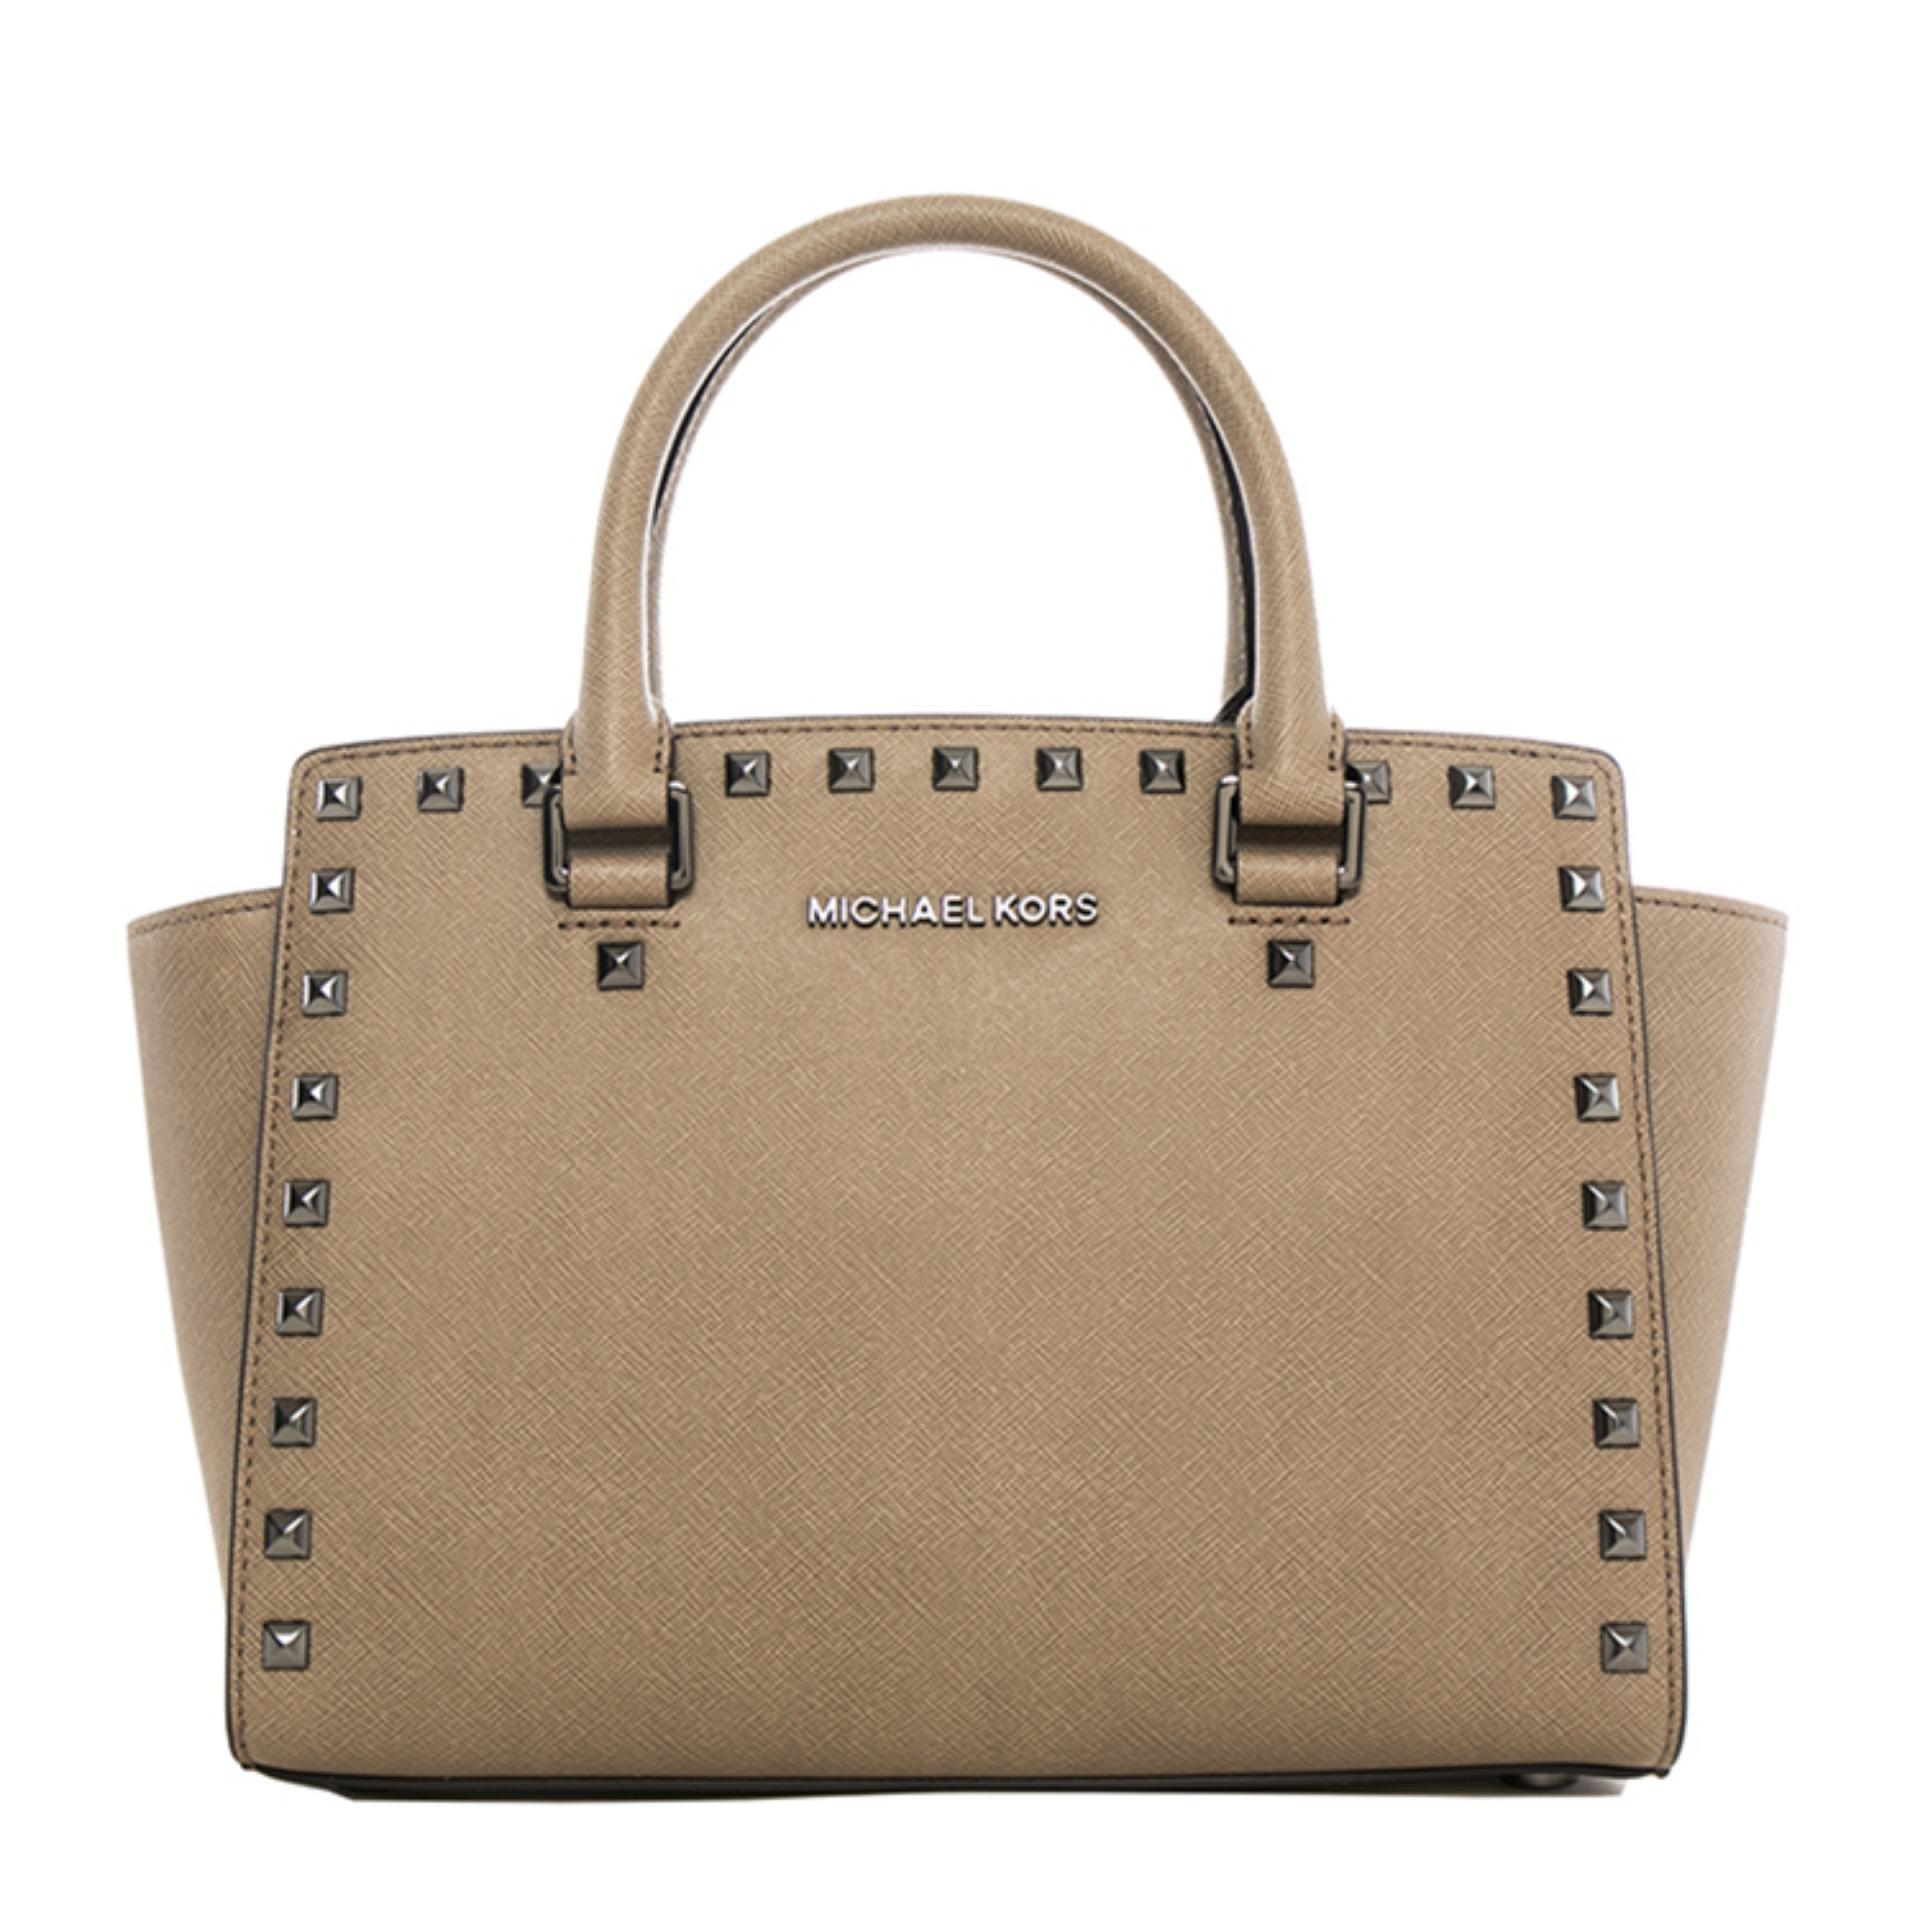 724263a7baf987 Michael Kors Selma Stud Medium Top Zip Satchel Bag (Dune) # 30T6TSMS2L-DUNE